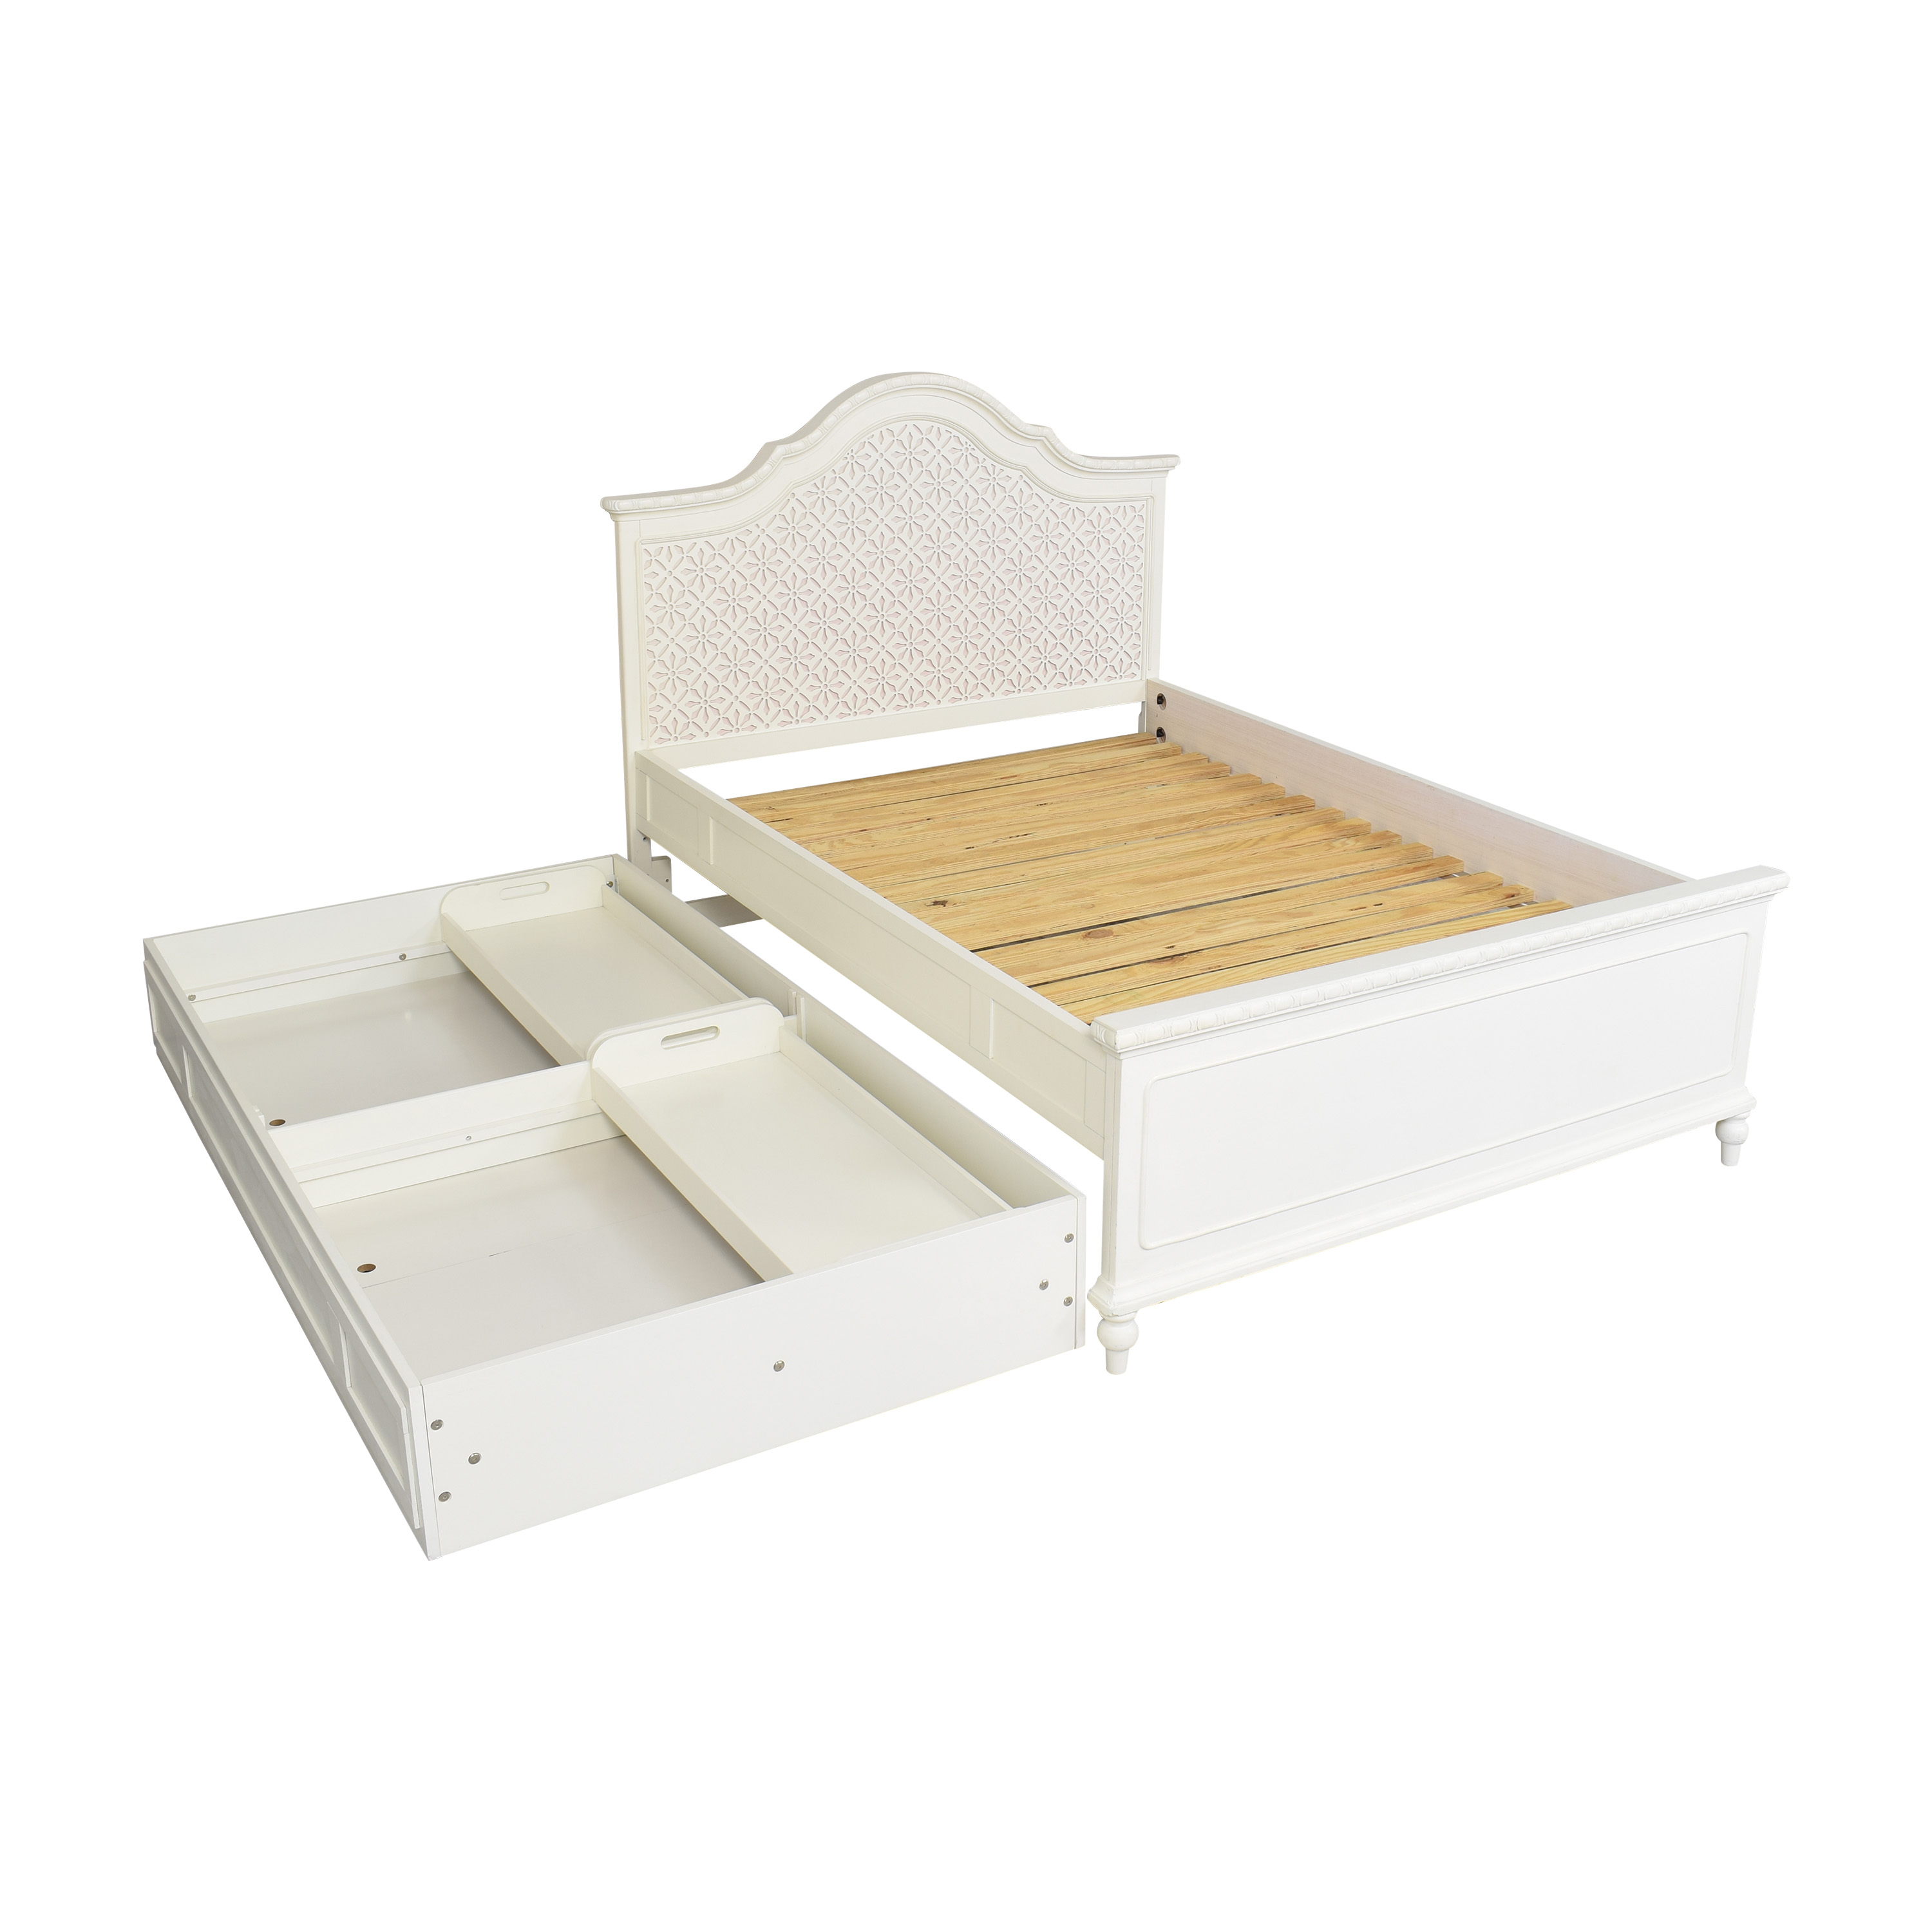 Universal Furniture Universal Furniture SmartStuff Bellamy Full Bed with Trundle dimensions